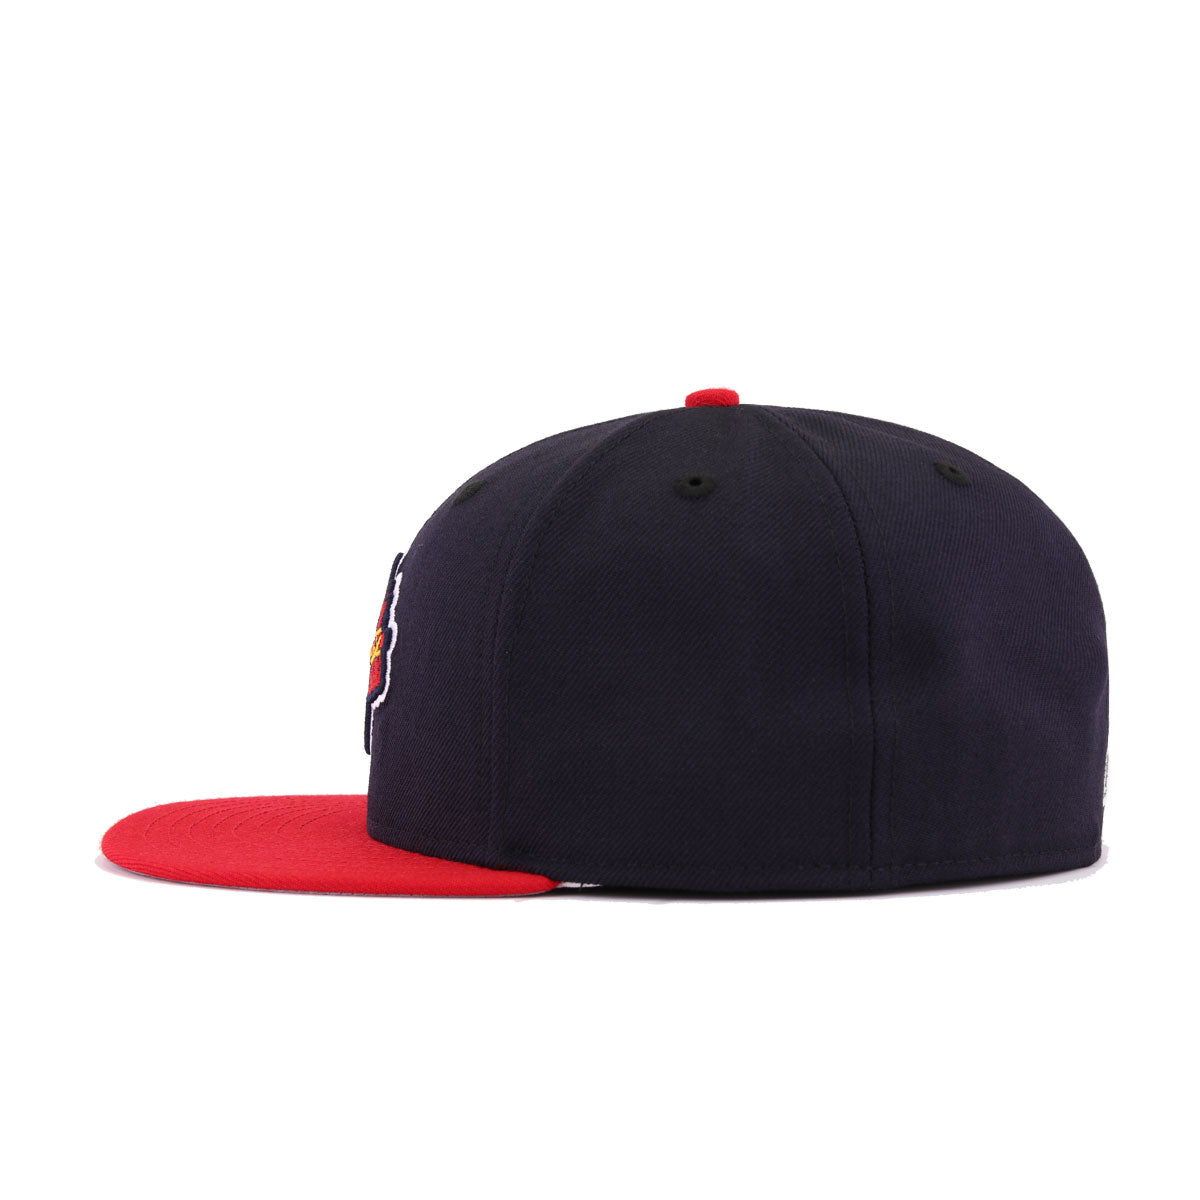 Atlanta Braves Navy Scarlet Tomahawk New Era 59Fifty Fitted